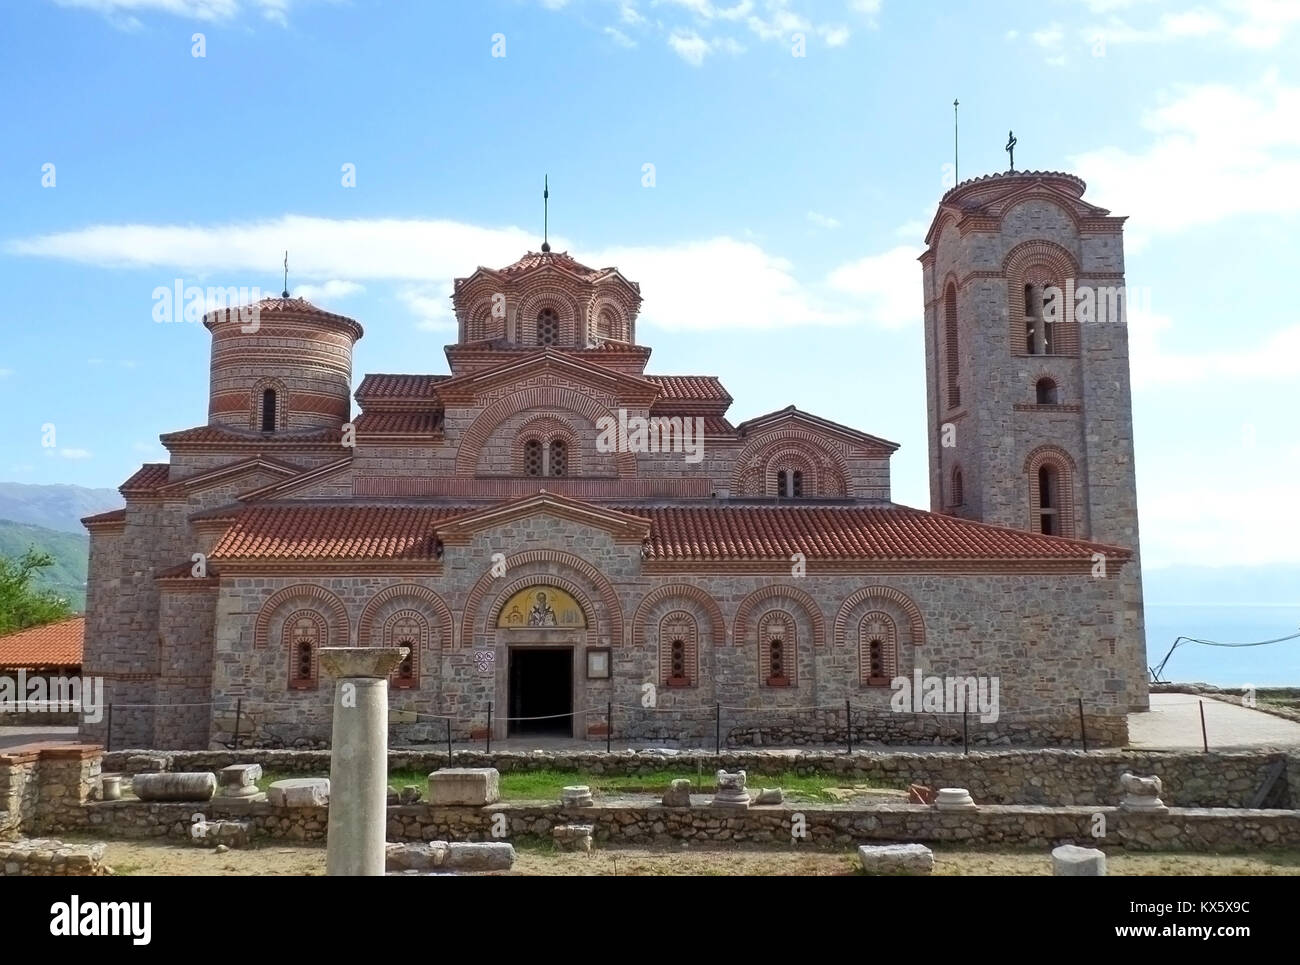 Impressive St. Clement's Church at the Plaosnik archaeological site of Ohrid, Macedonia Stock Photo